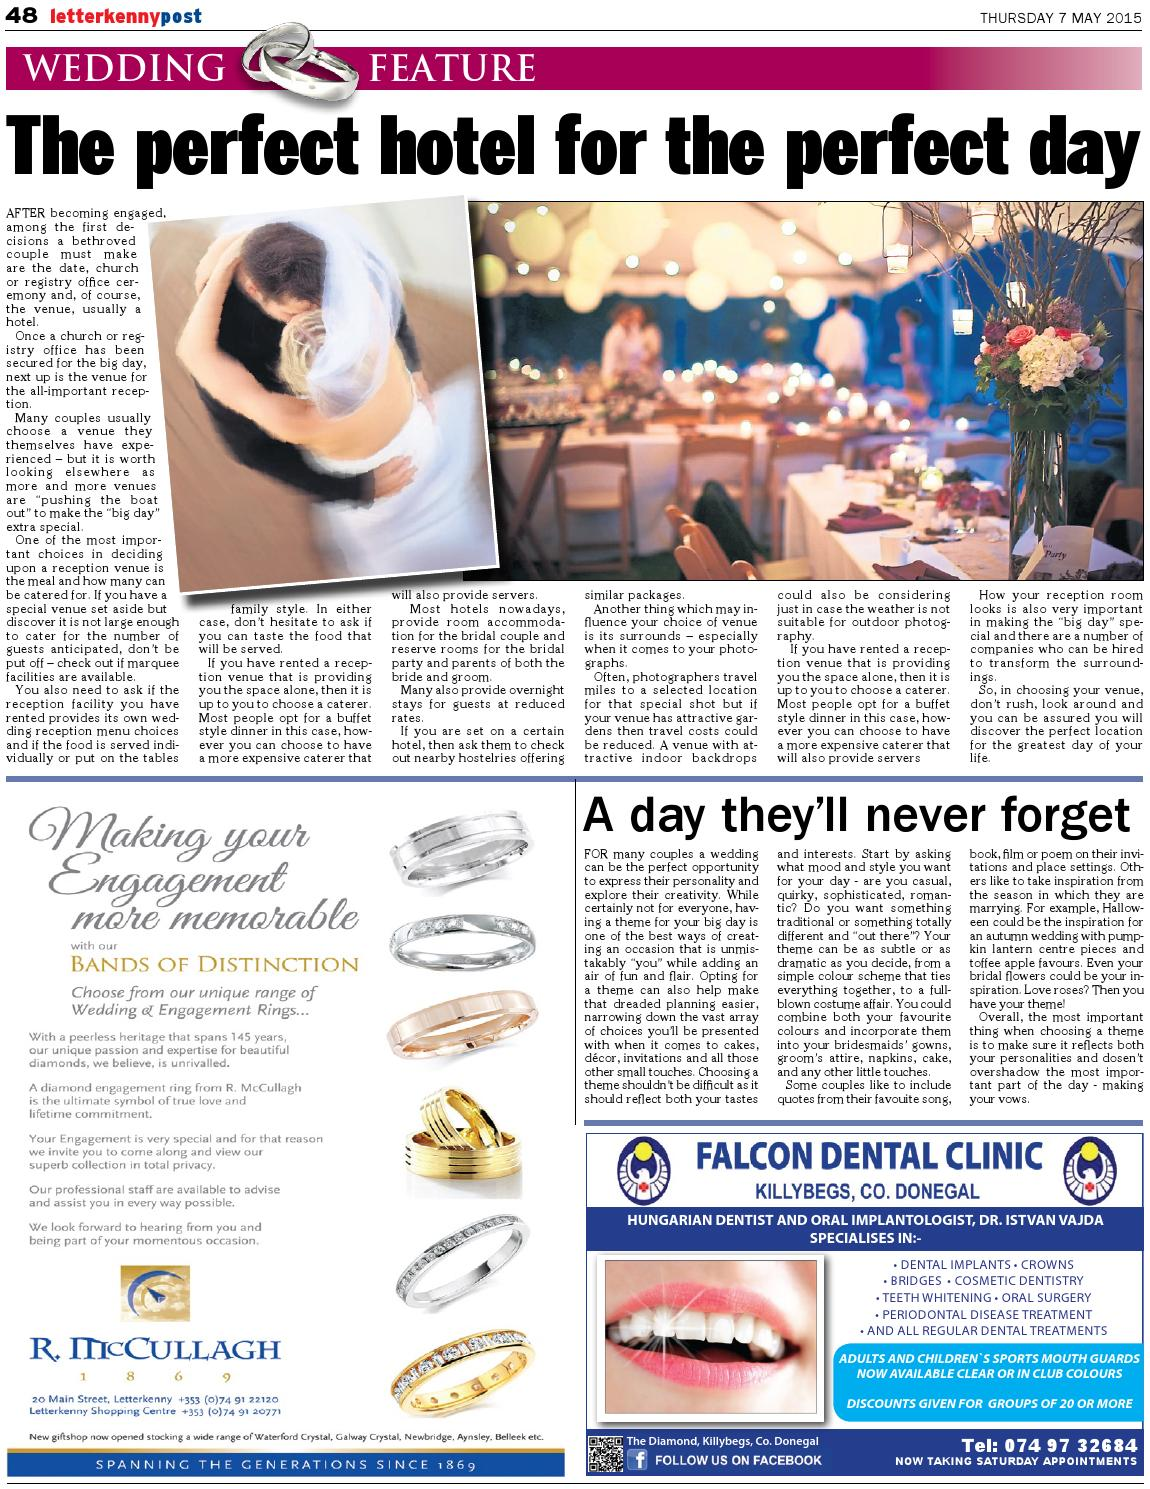 7 May 2015 Letterkenny Post by River Media Newspapers - issuu